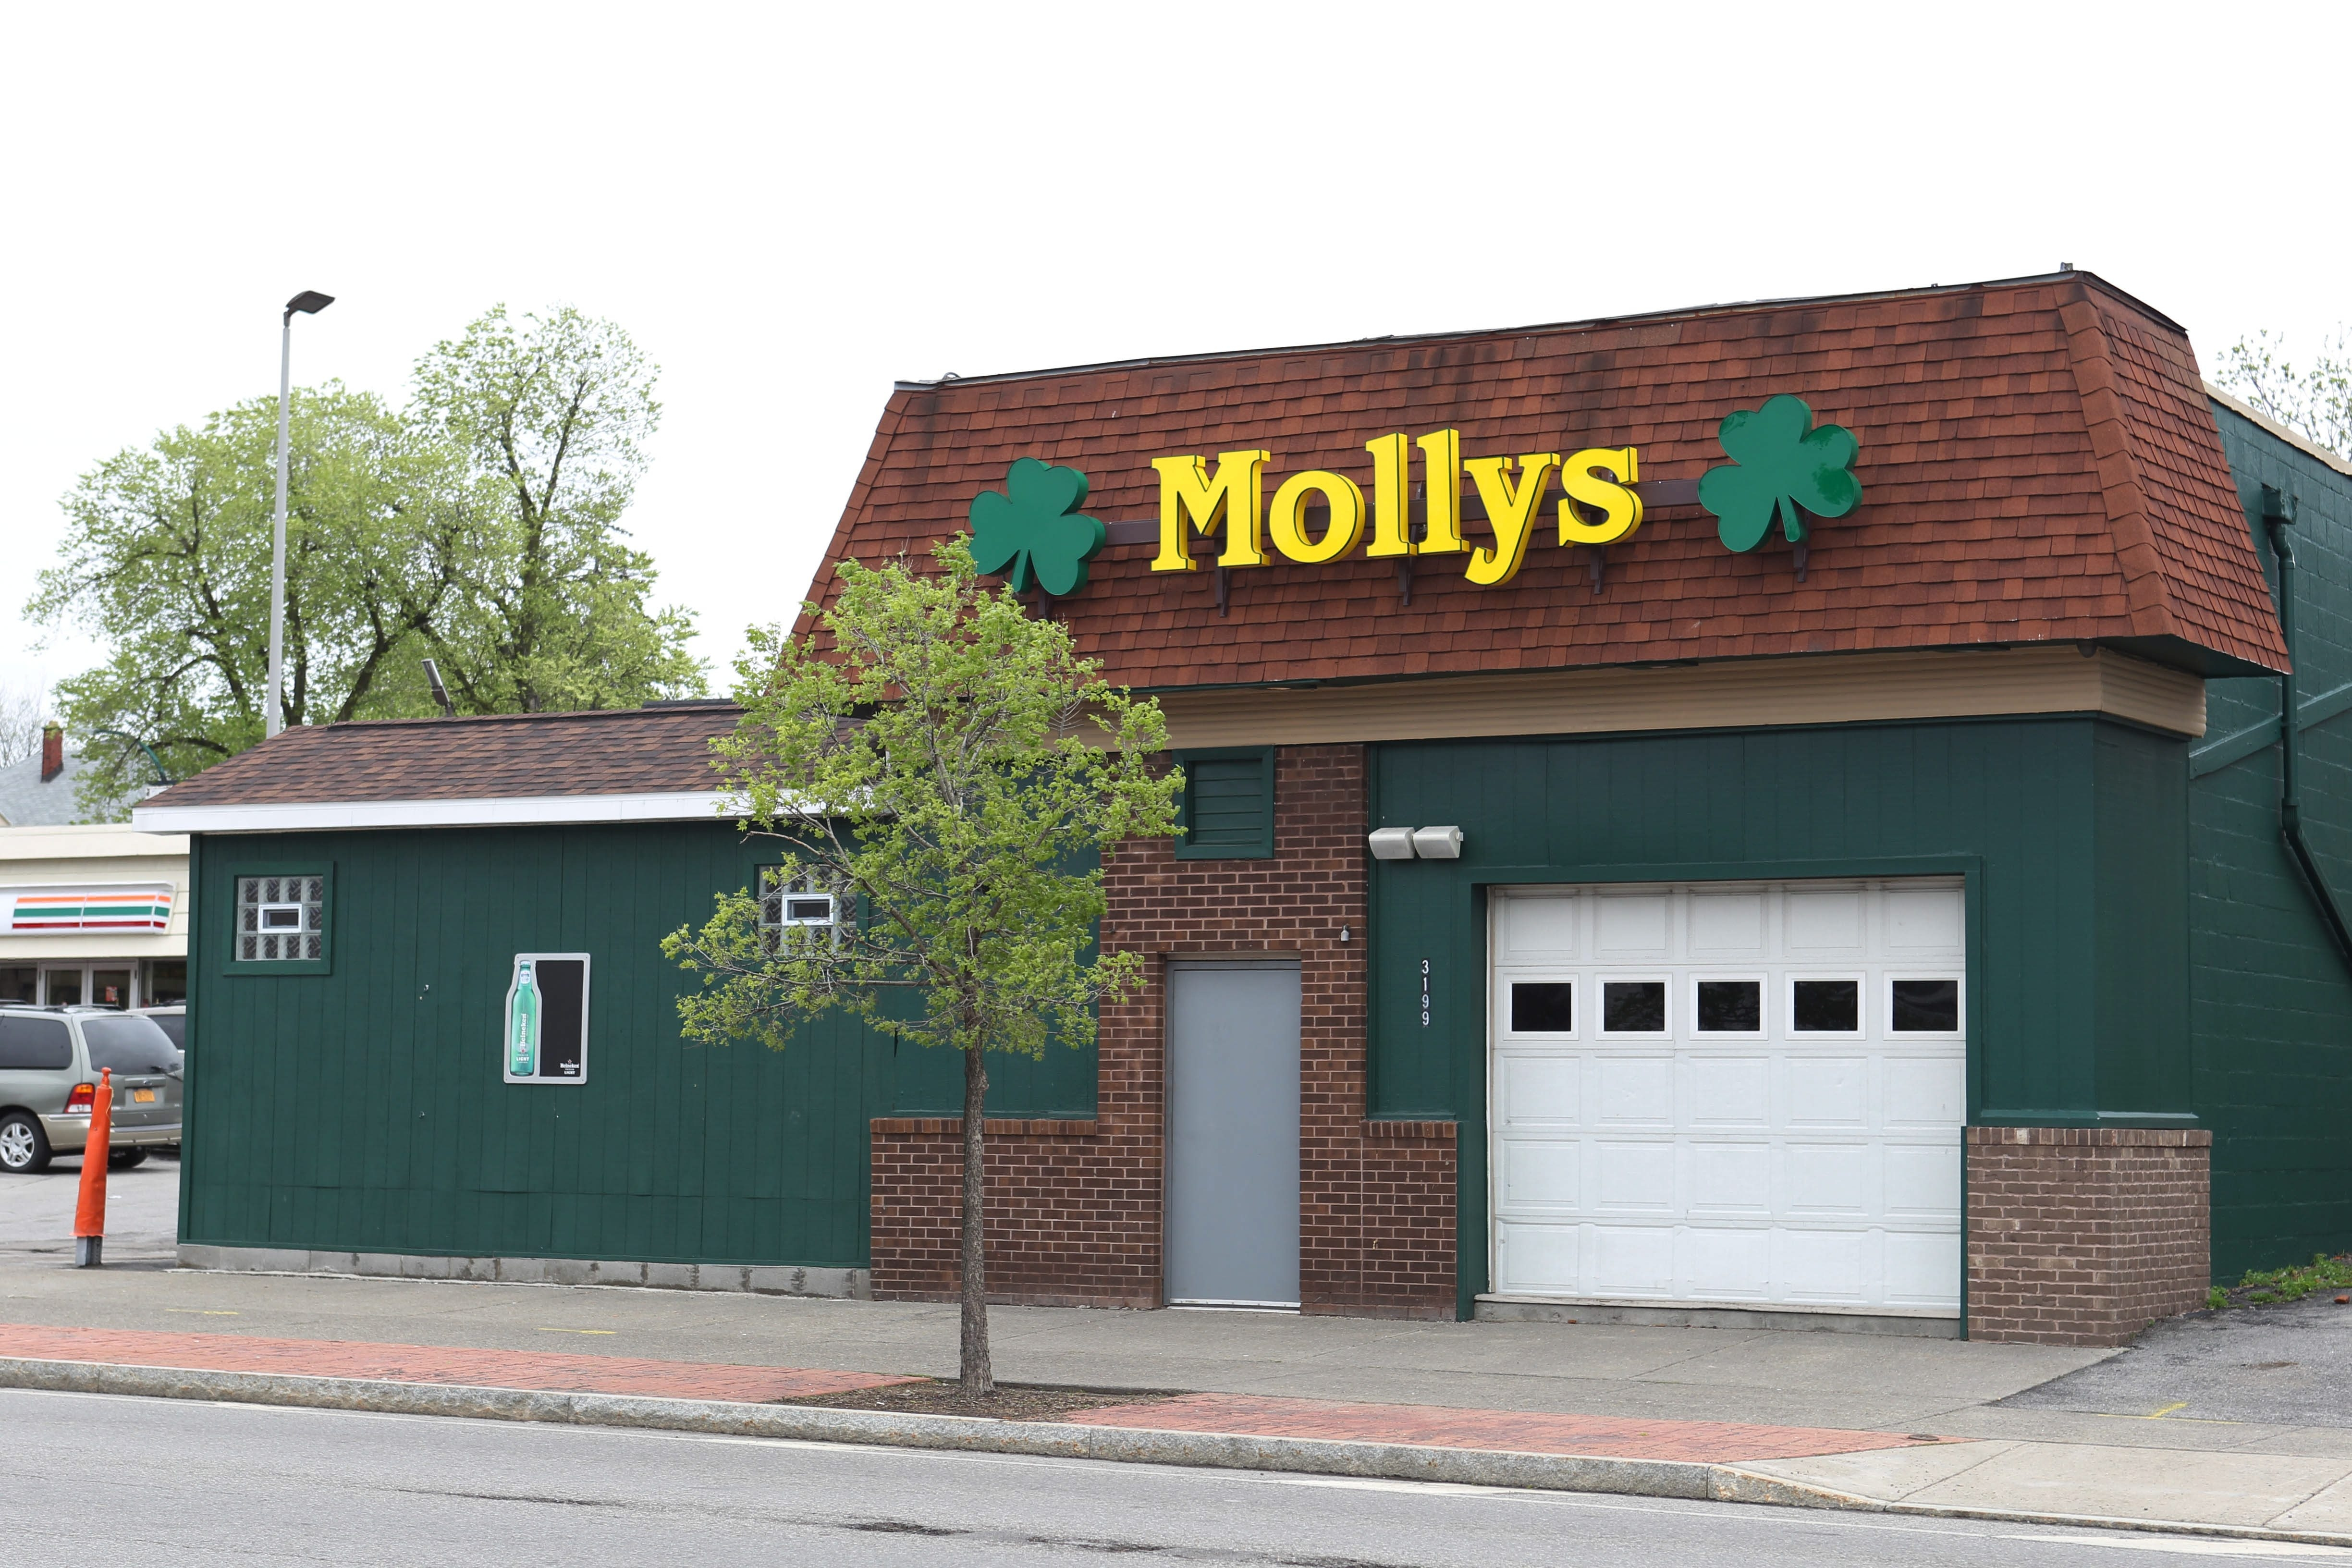 William C. Sager Jr., 28, is in intensive care after incident at Molly's on Main Street in Buffalo.